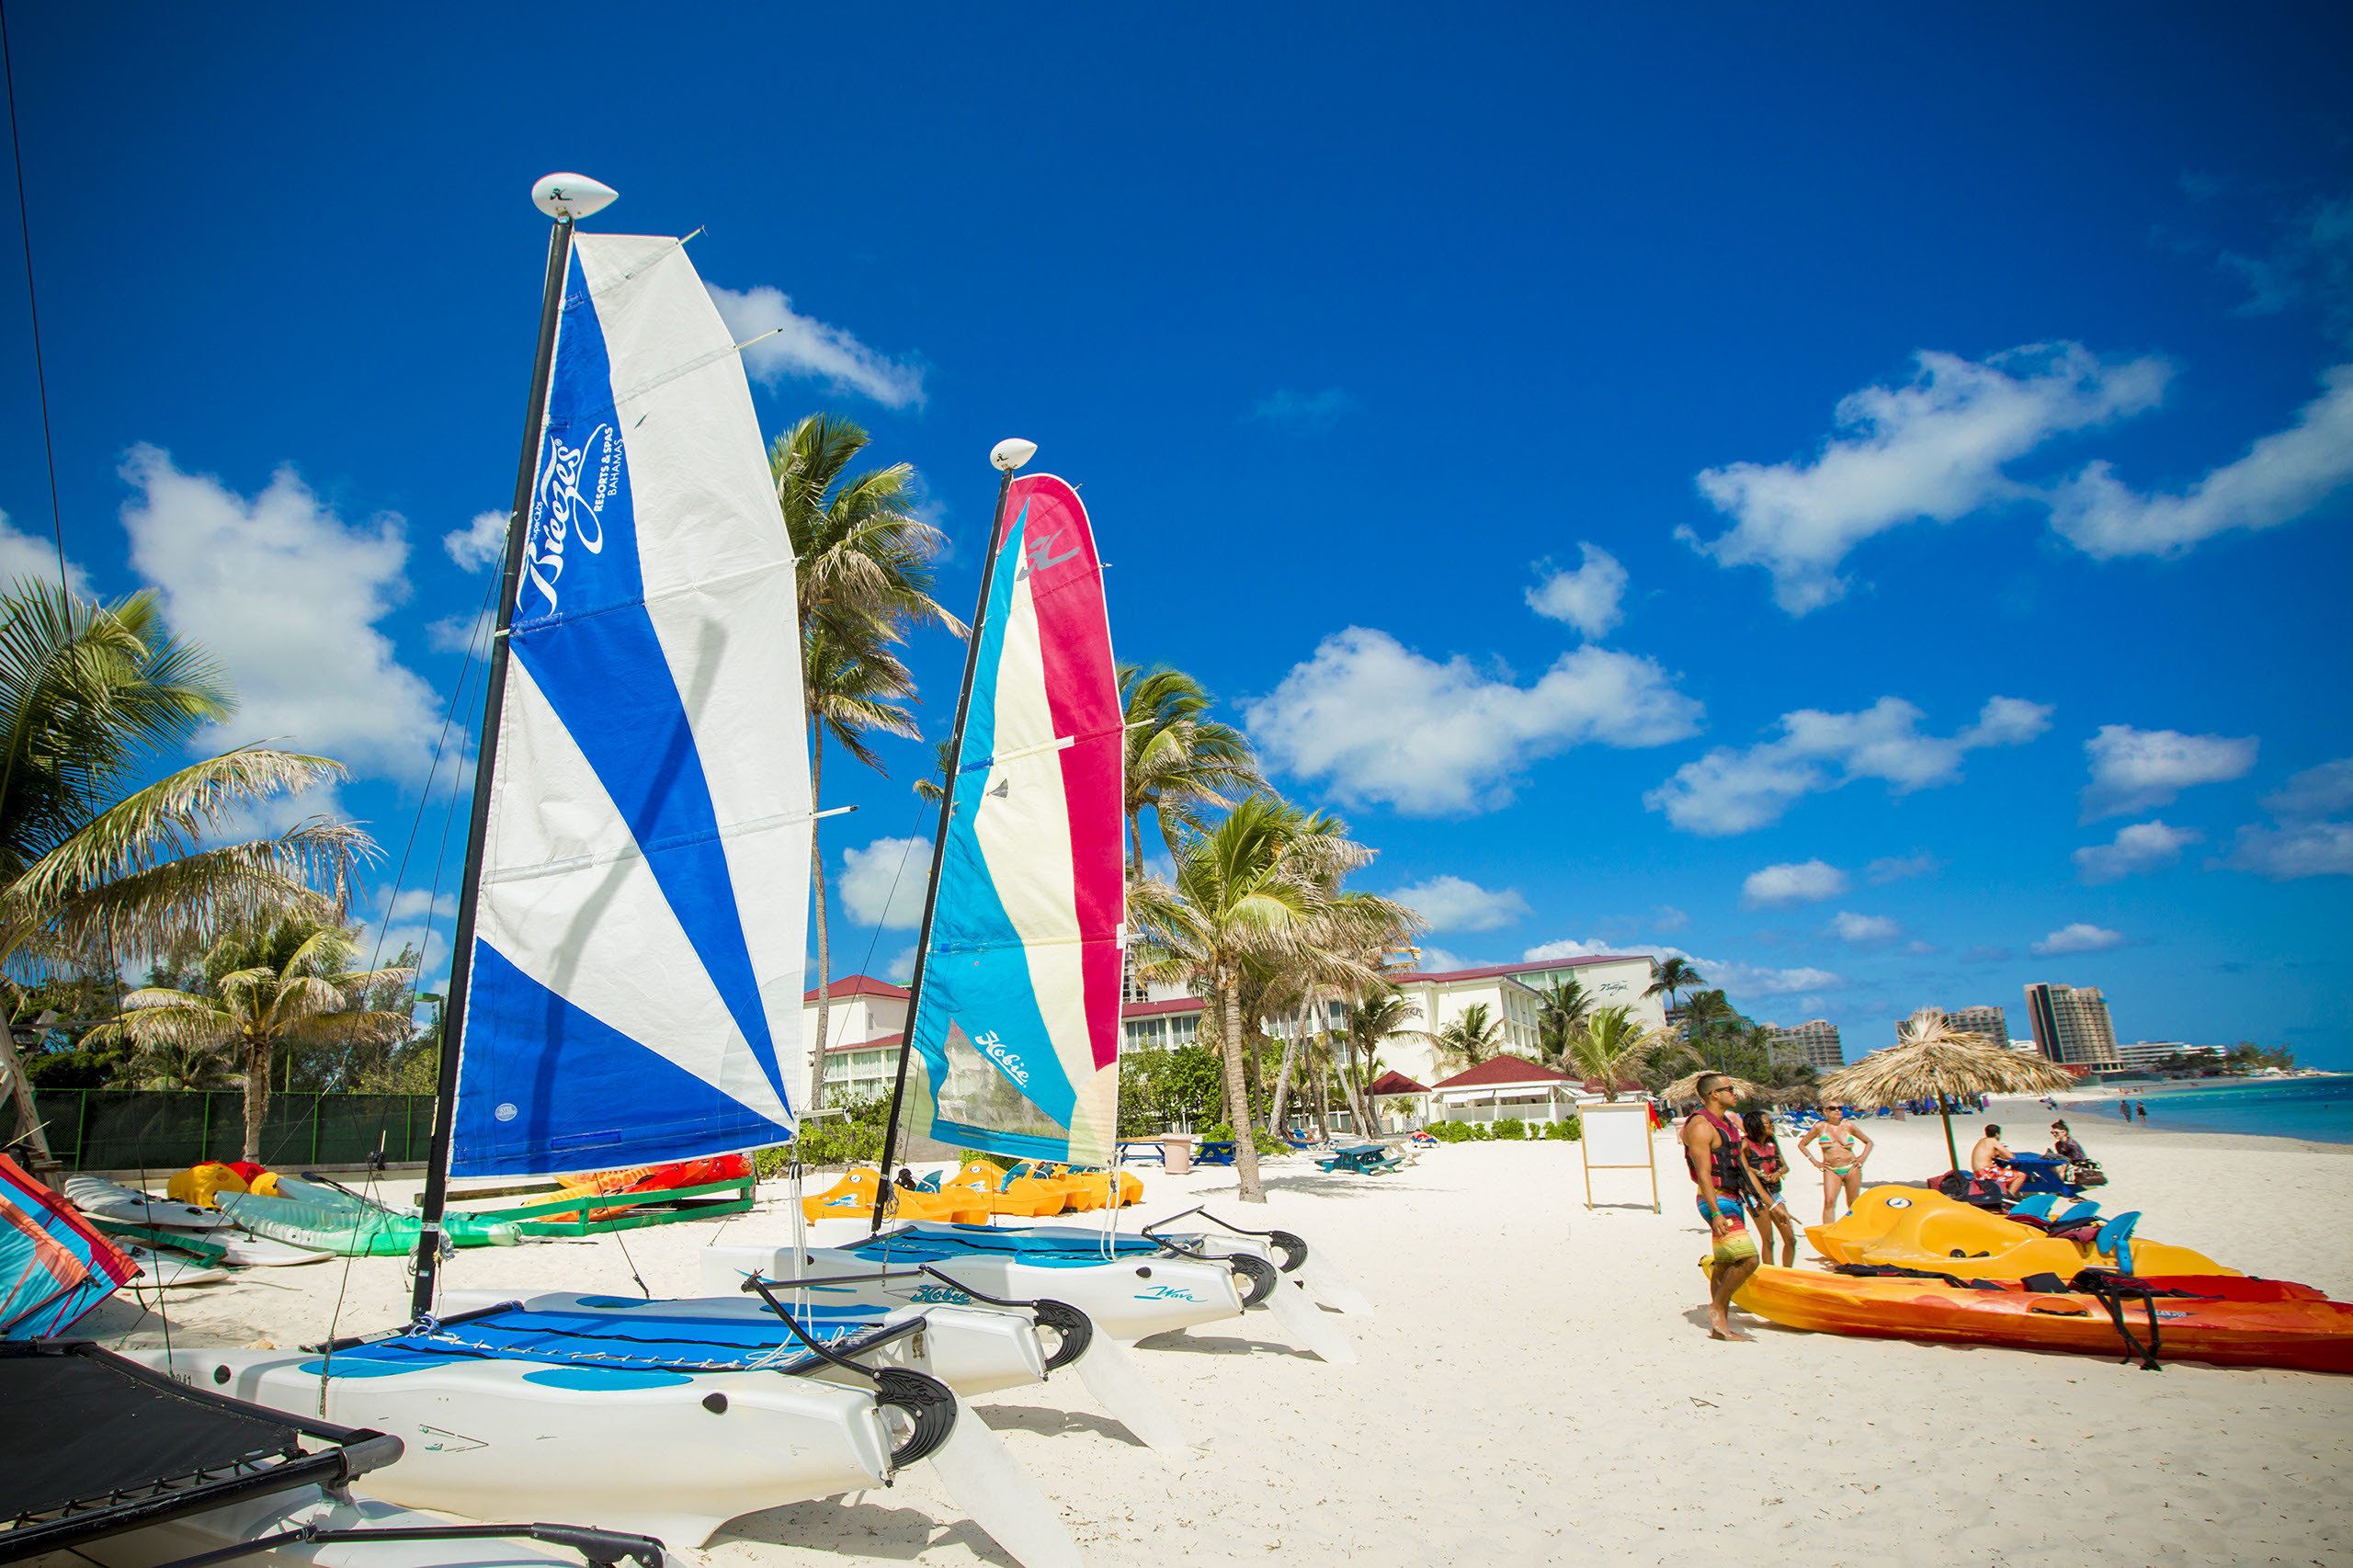 All-Inclusive Resorts Budget Hotels sky body of water water Beach Sea vacation water transportation tourism coastal and oceanic landforms cloud sail tree leisure Boat shore summer sailboat sailing Ocean Coast wave caribbean wind bay sand